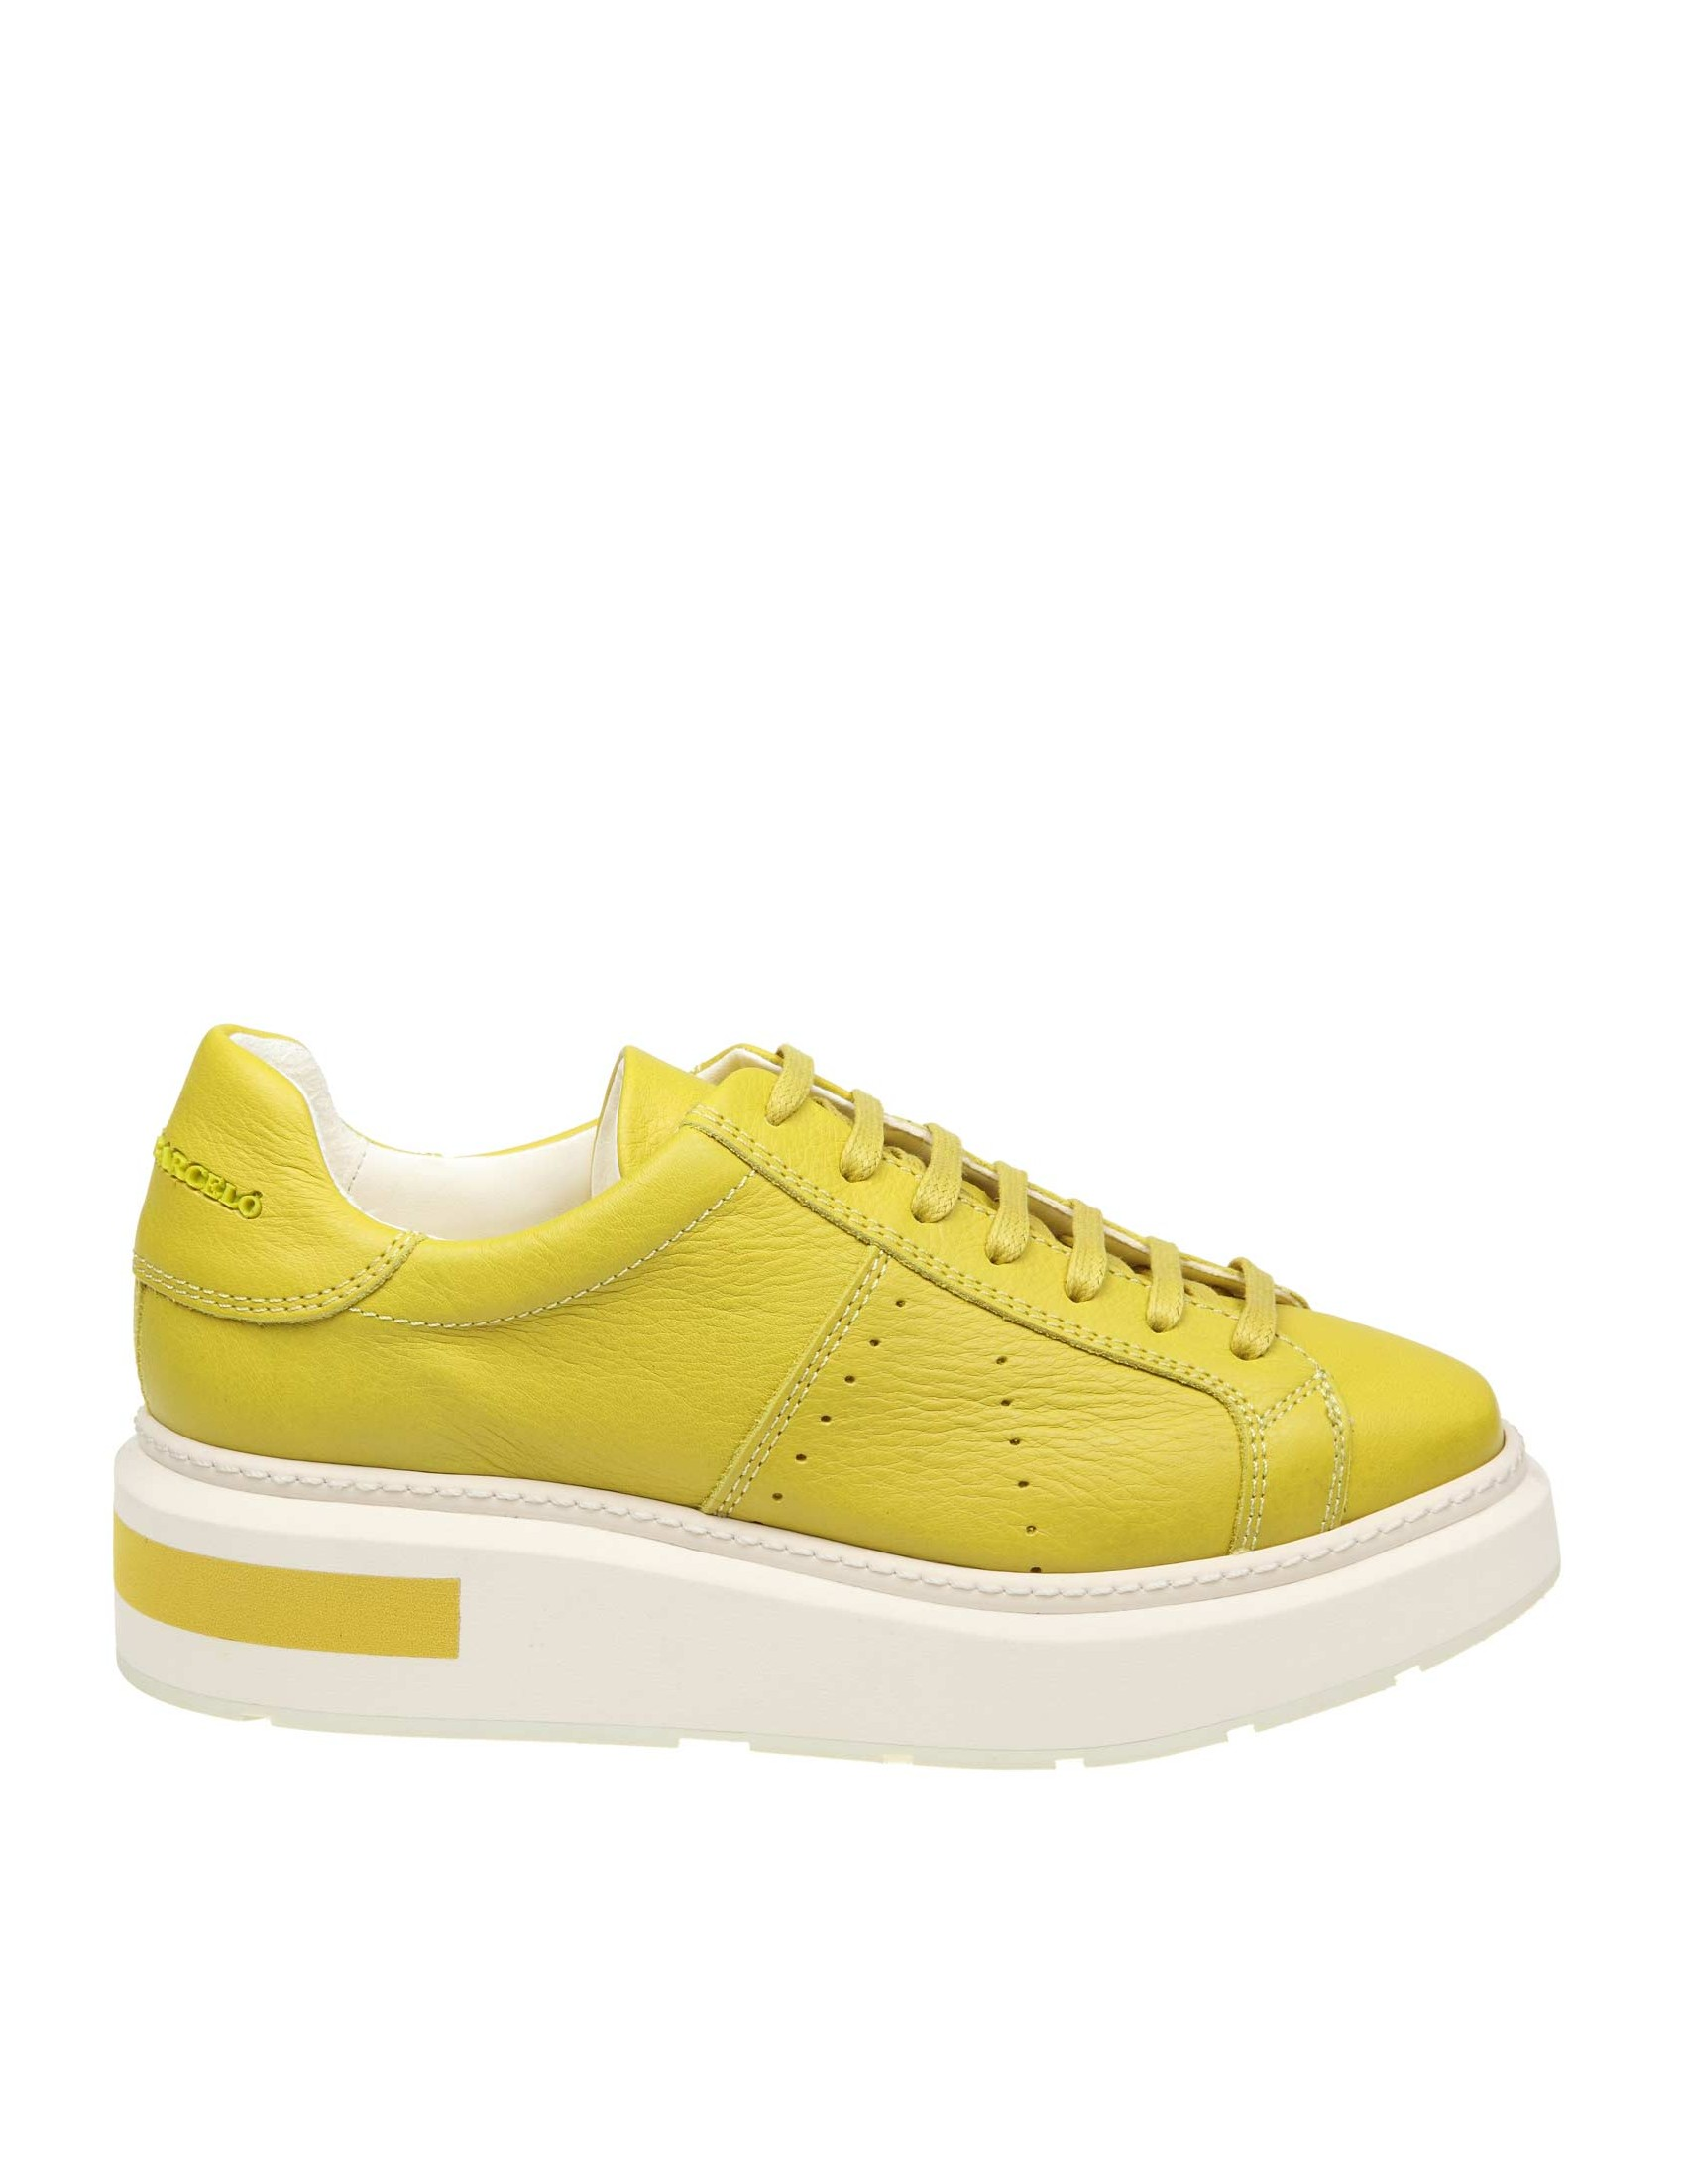 huge selection of 2c7ee 4e189 MANUEL BARCELO 'SNEAKERS IN LEATHER COLOR YELLOW